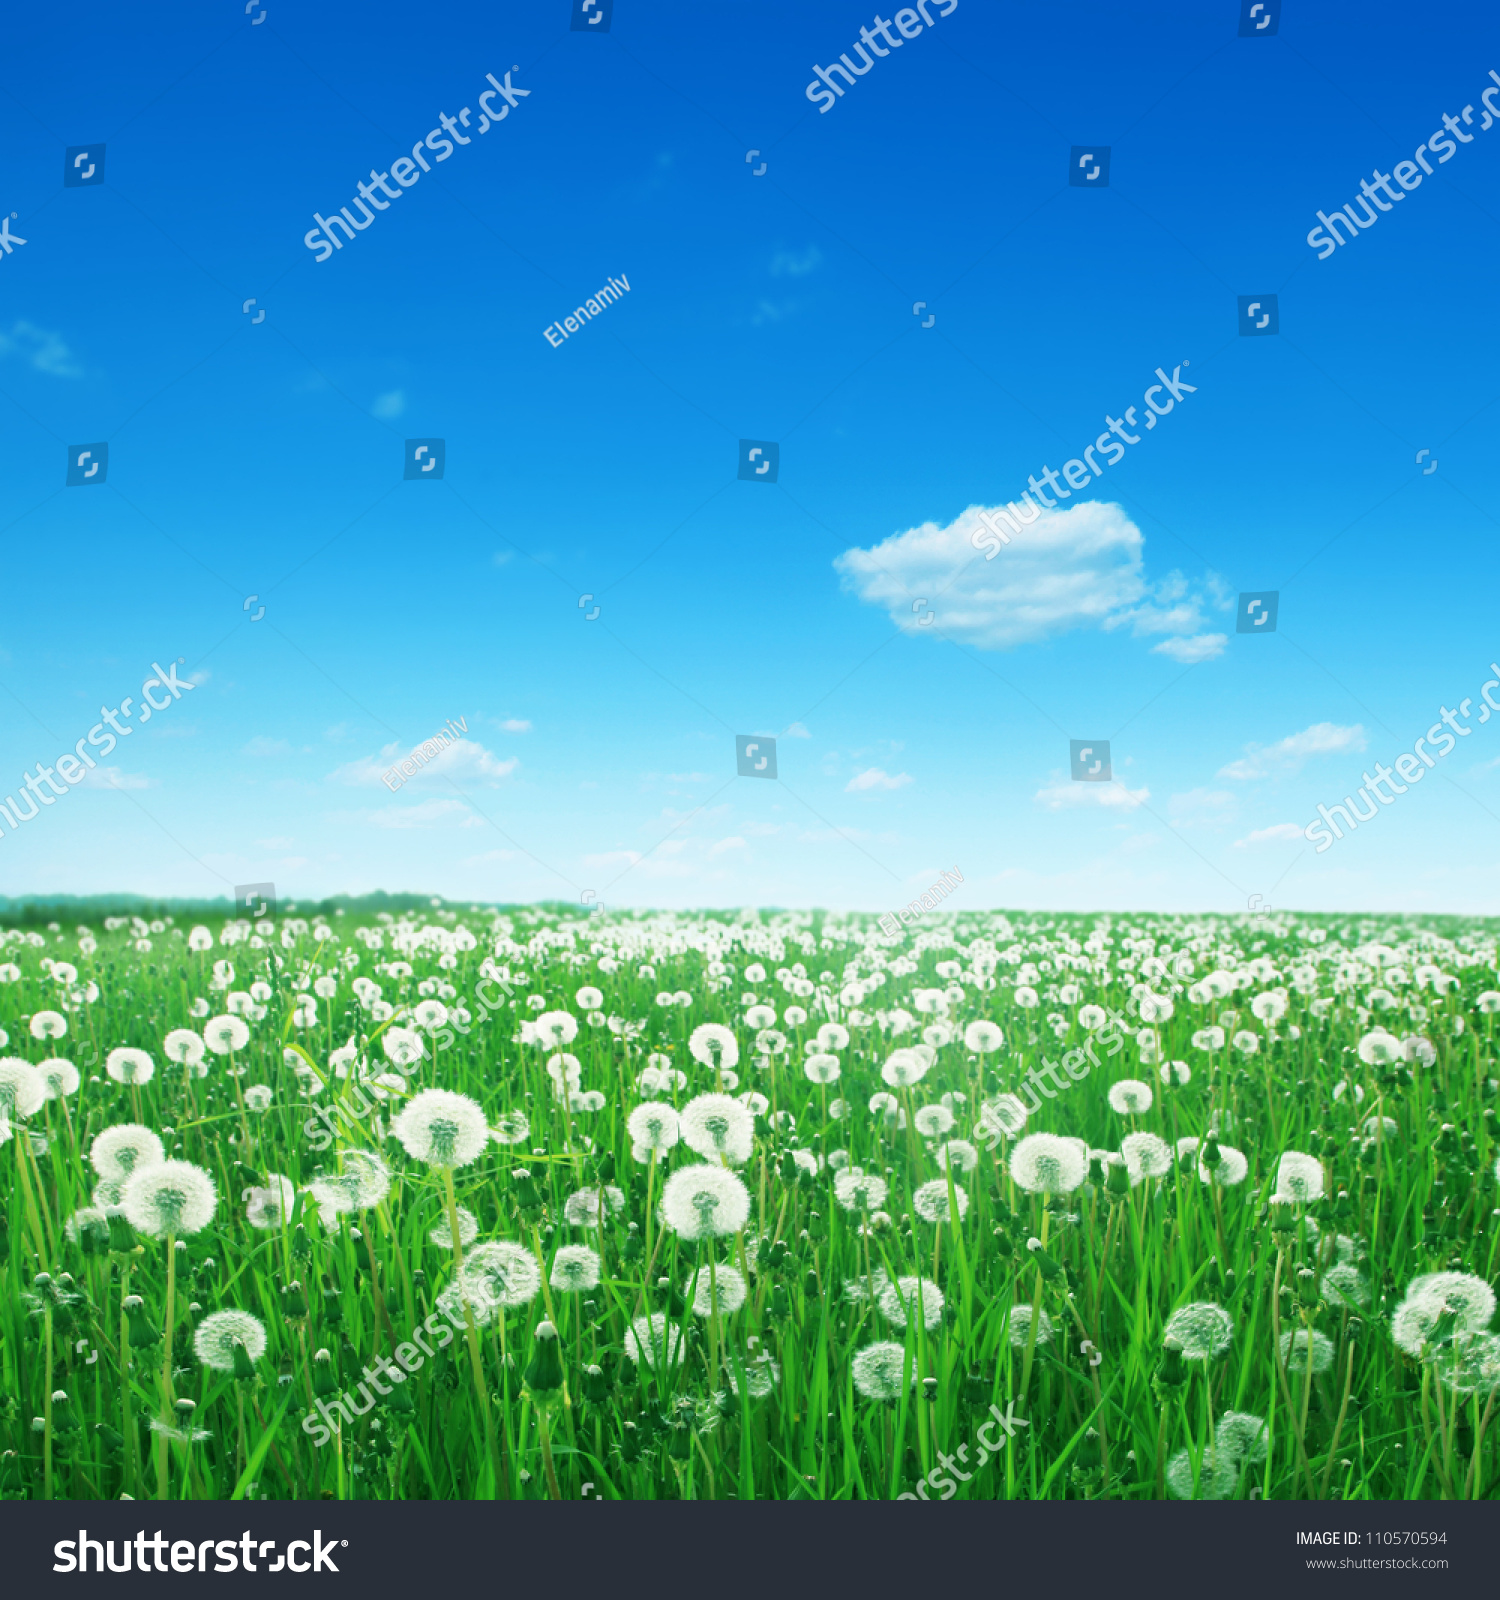 White Cloud In Blue Sky And Dandelion Field. Stock Photo